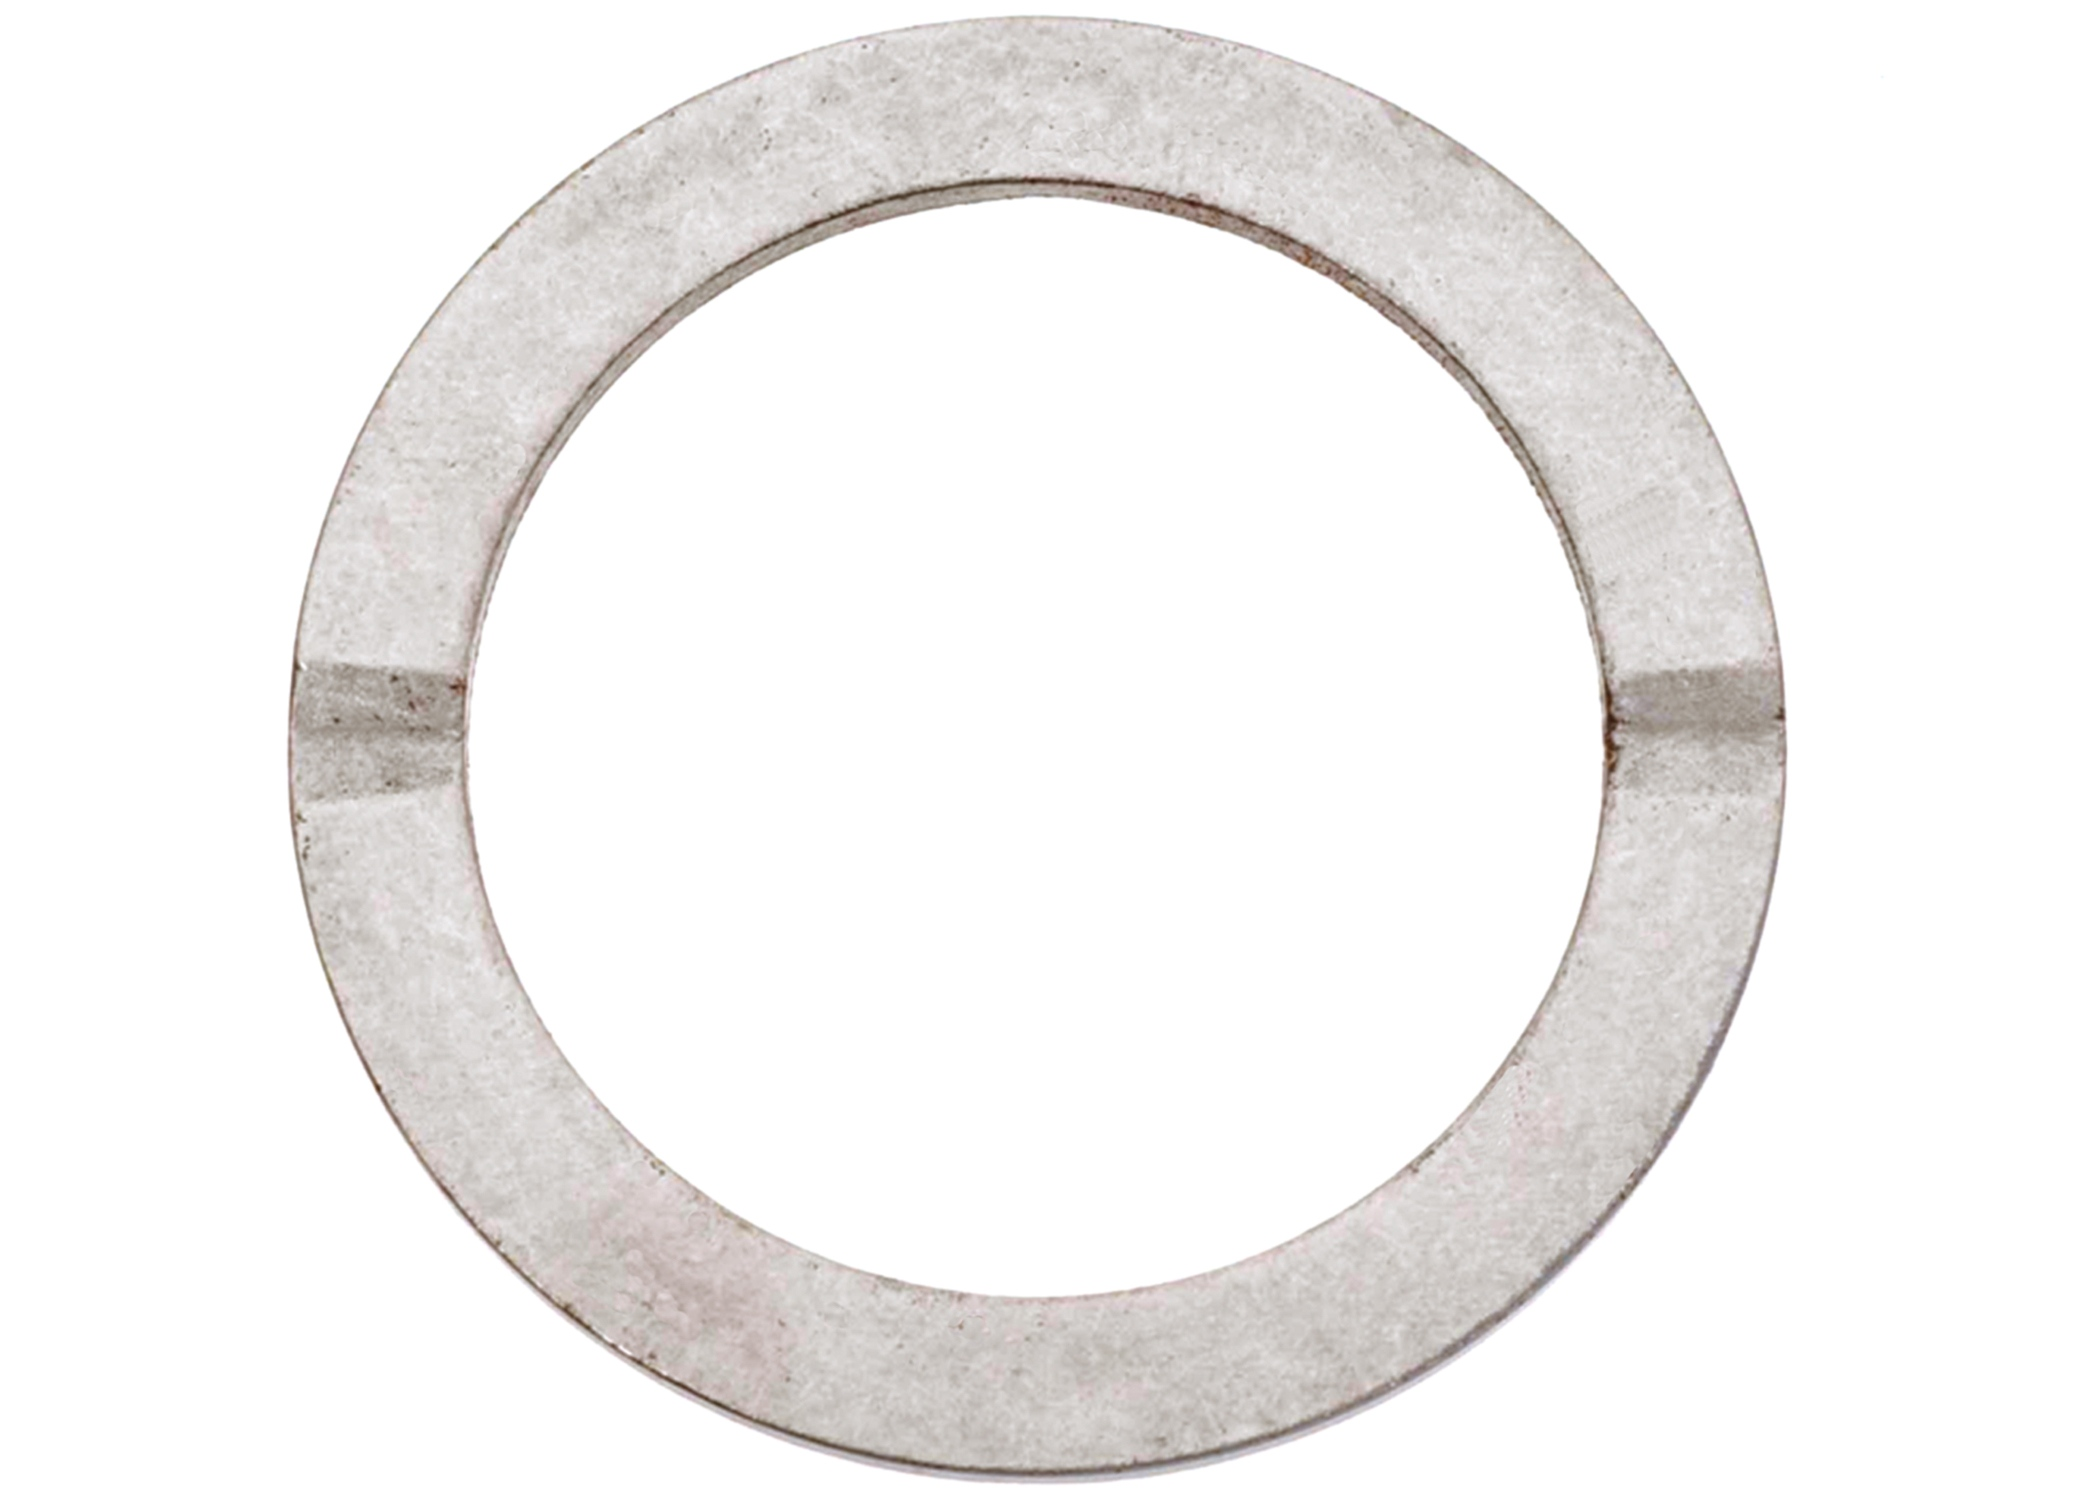 ACDELCO GM ORIGINAL EQUIPMENT - Automatic Transmission Carrier Thrust Washer (Input) - DCB 24204845